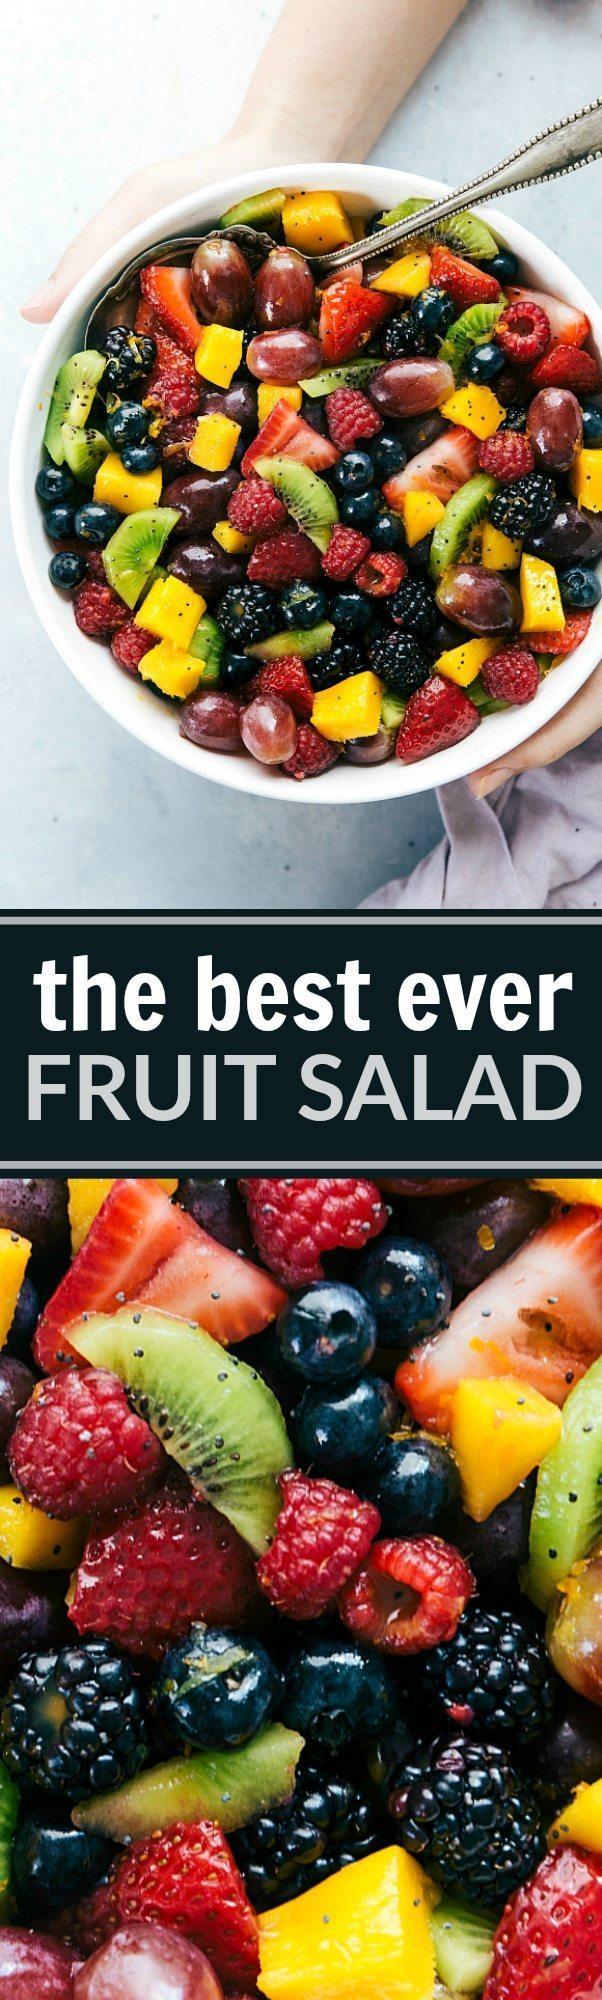 The ultimate BEST EVER FRUIT SALAD! via chelseasmessyapron.com